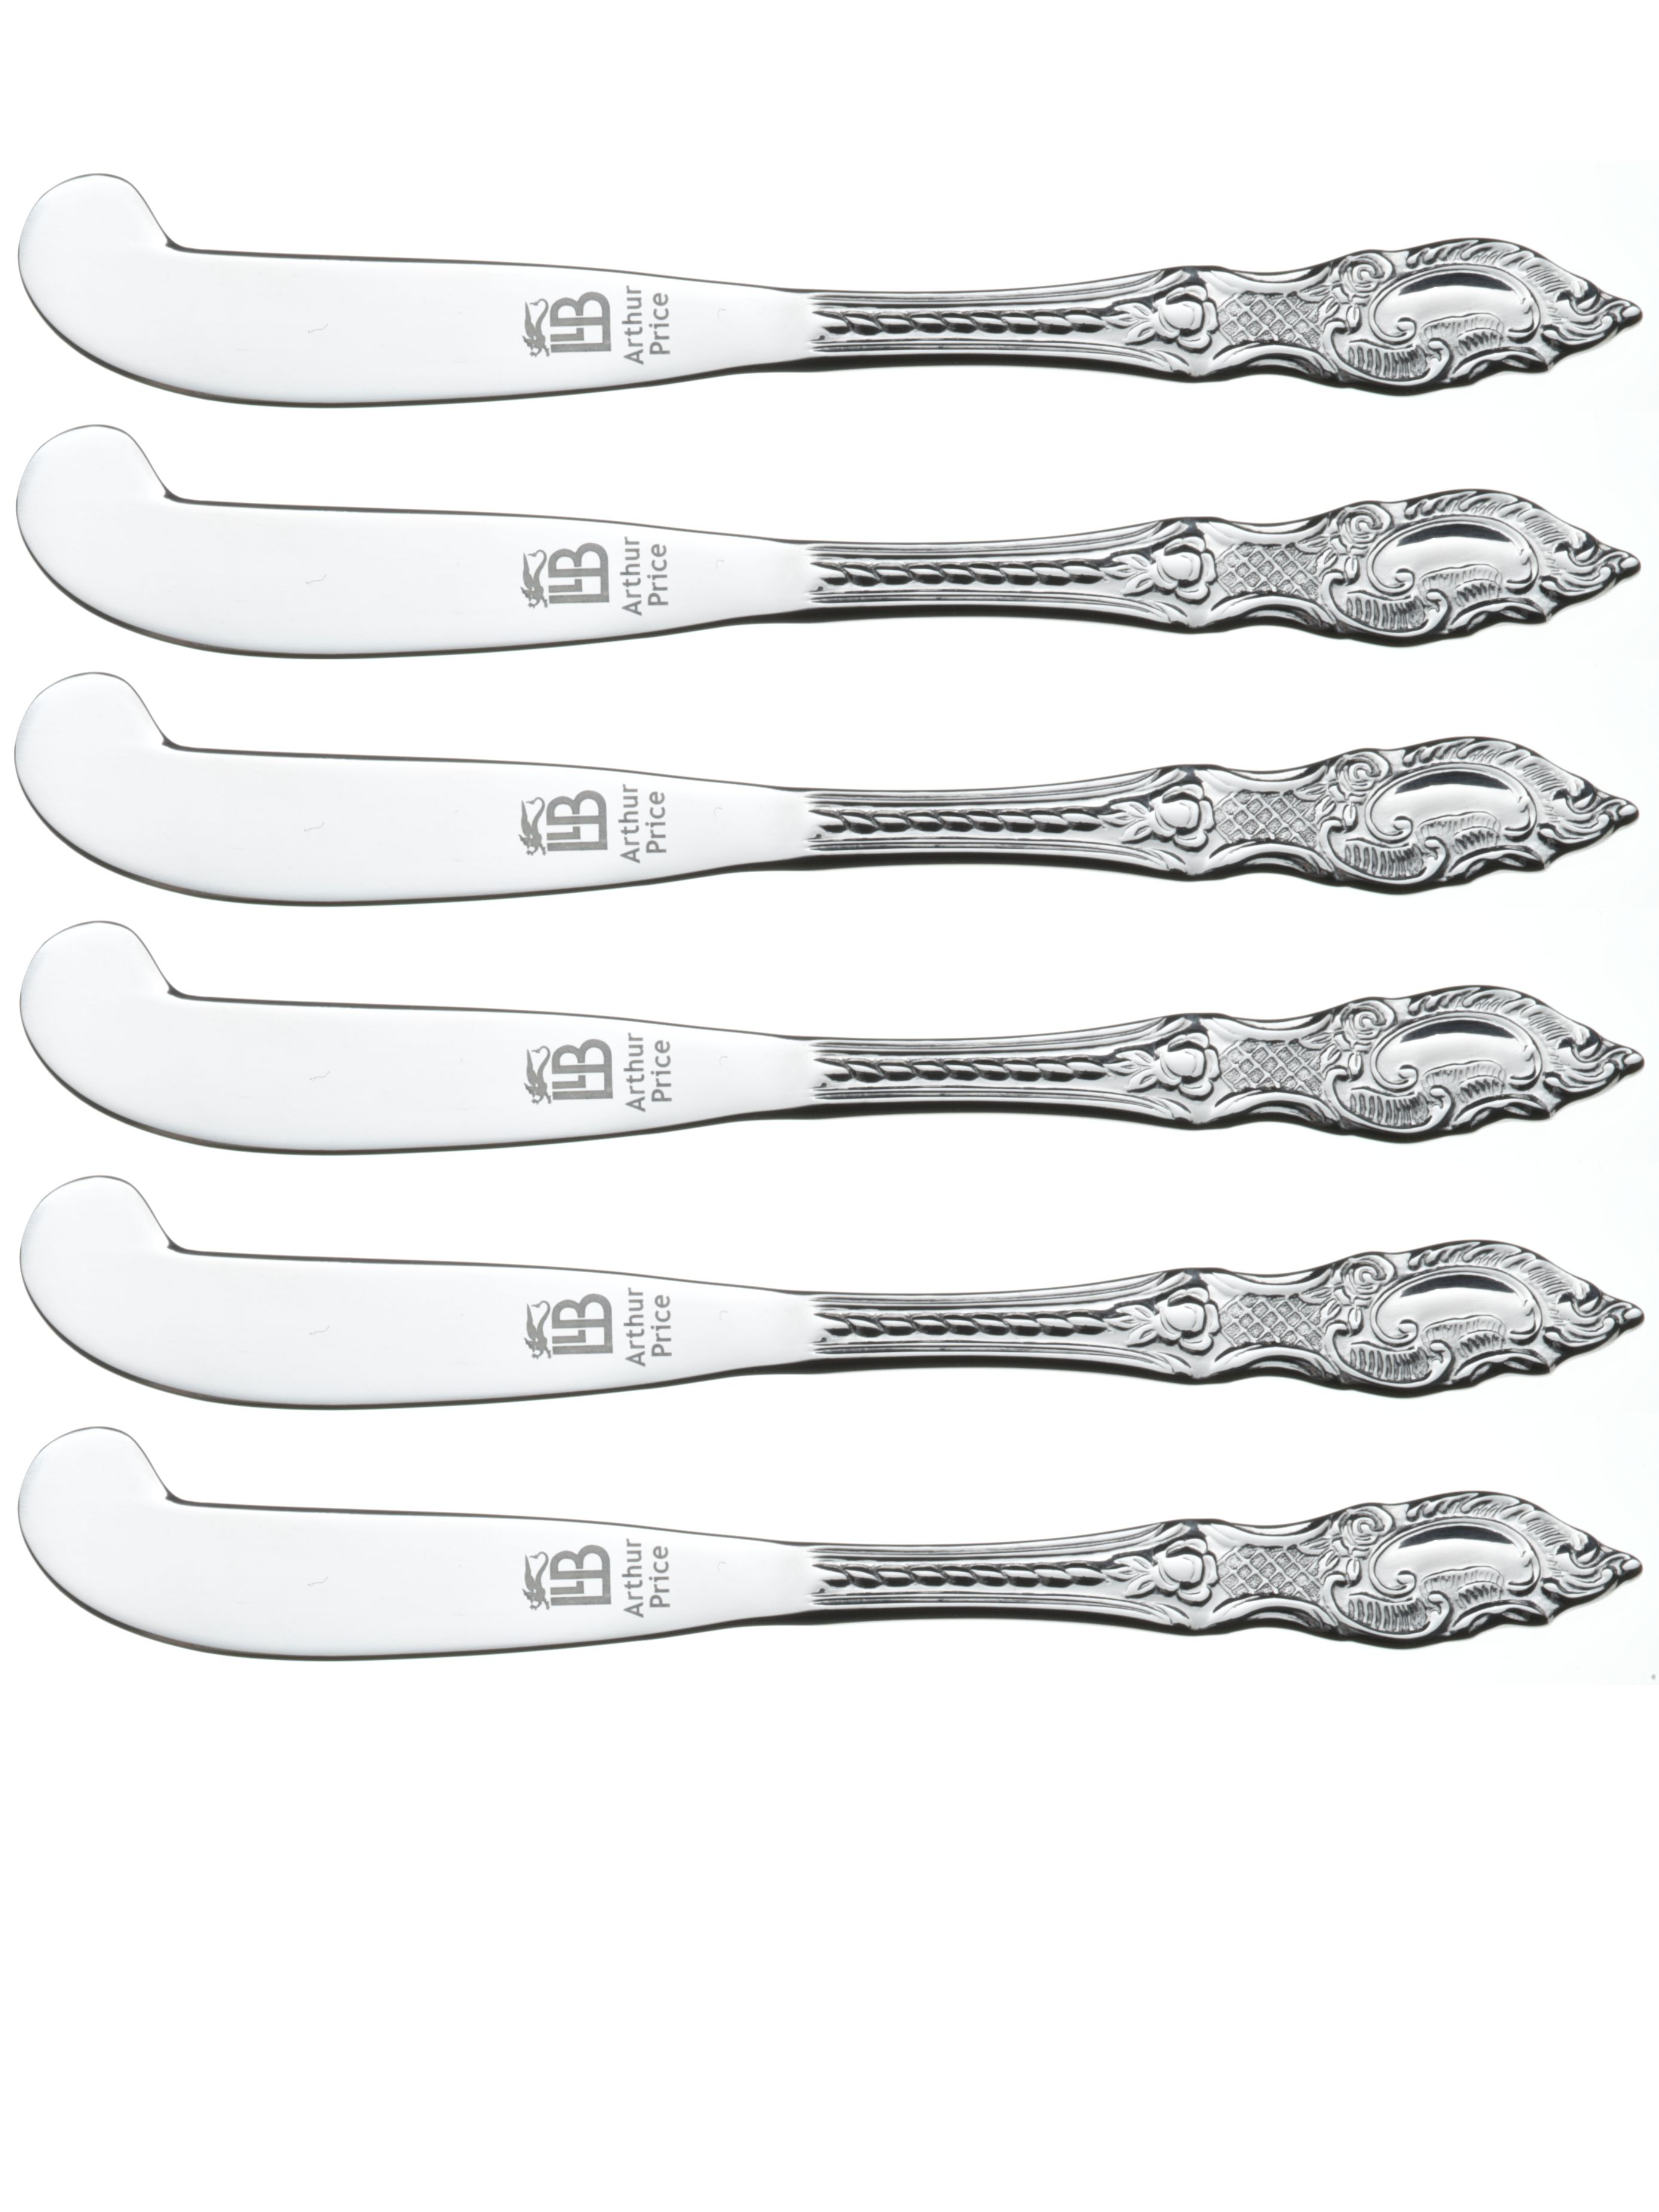 Box of 6 tea knives